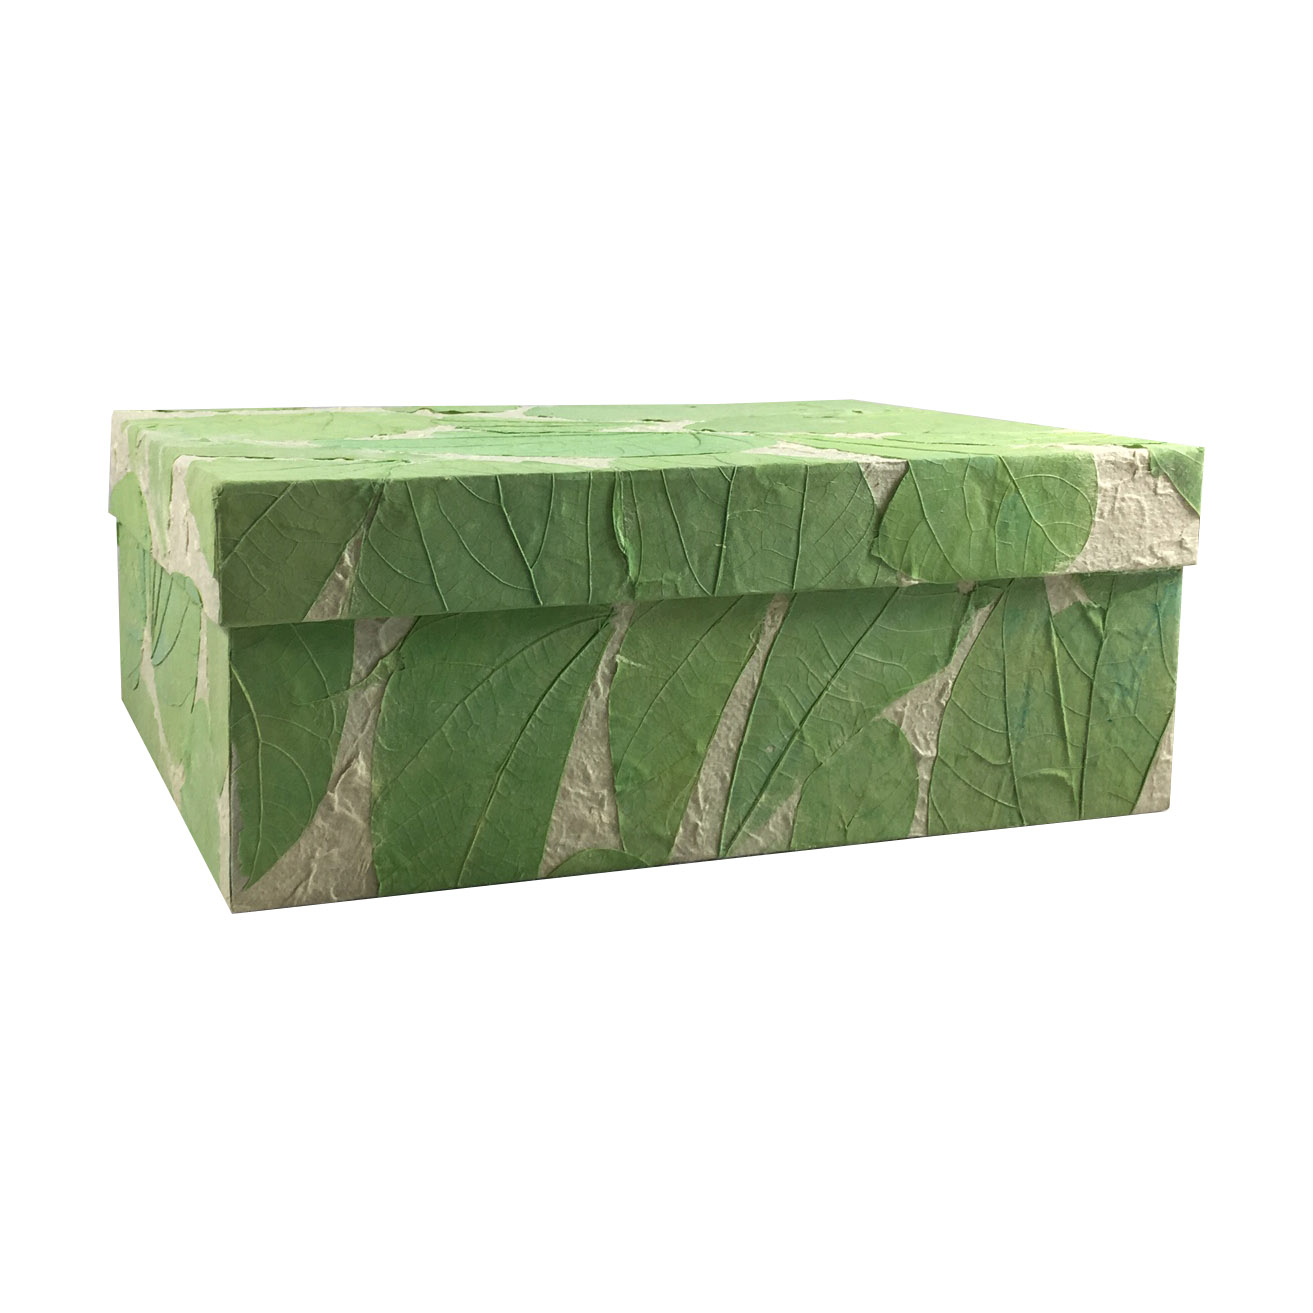 Green saa paper box with leaves from Thailand